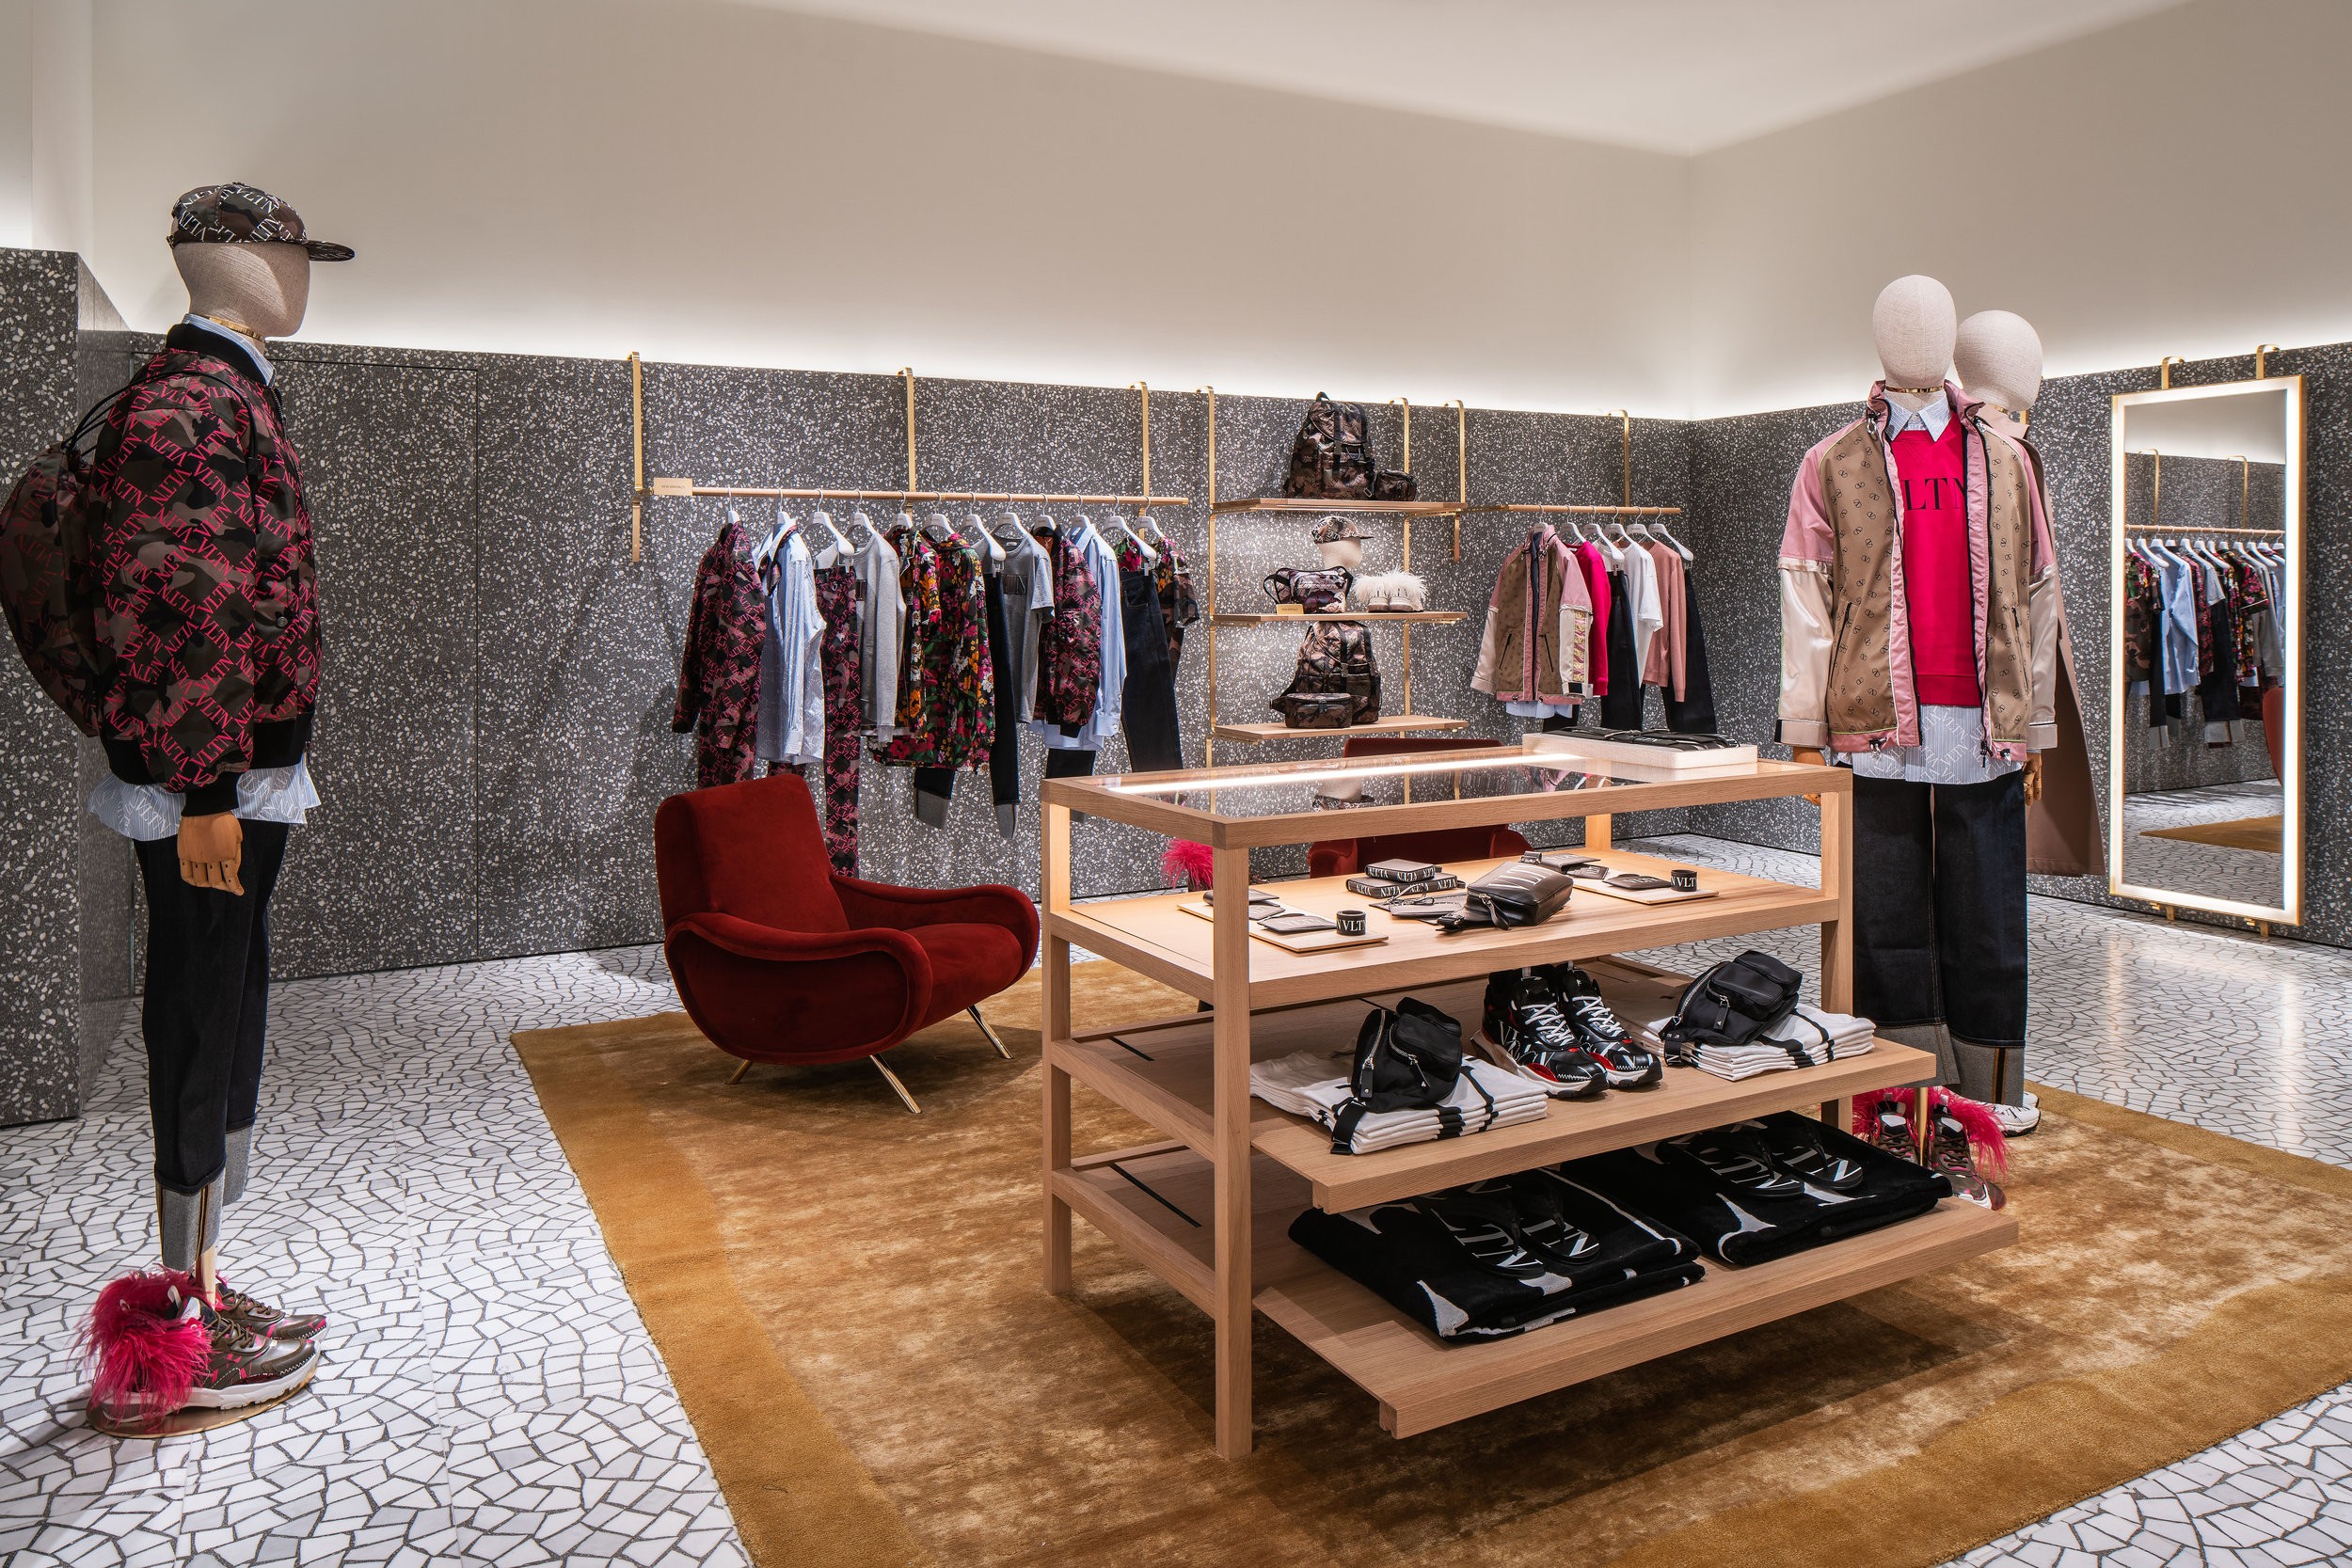 Men's ready-to-wear section